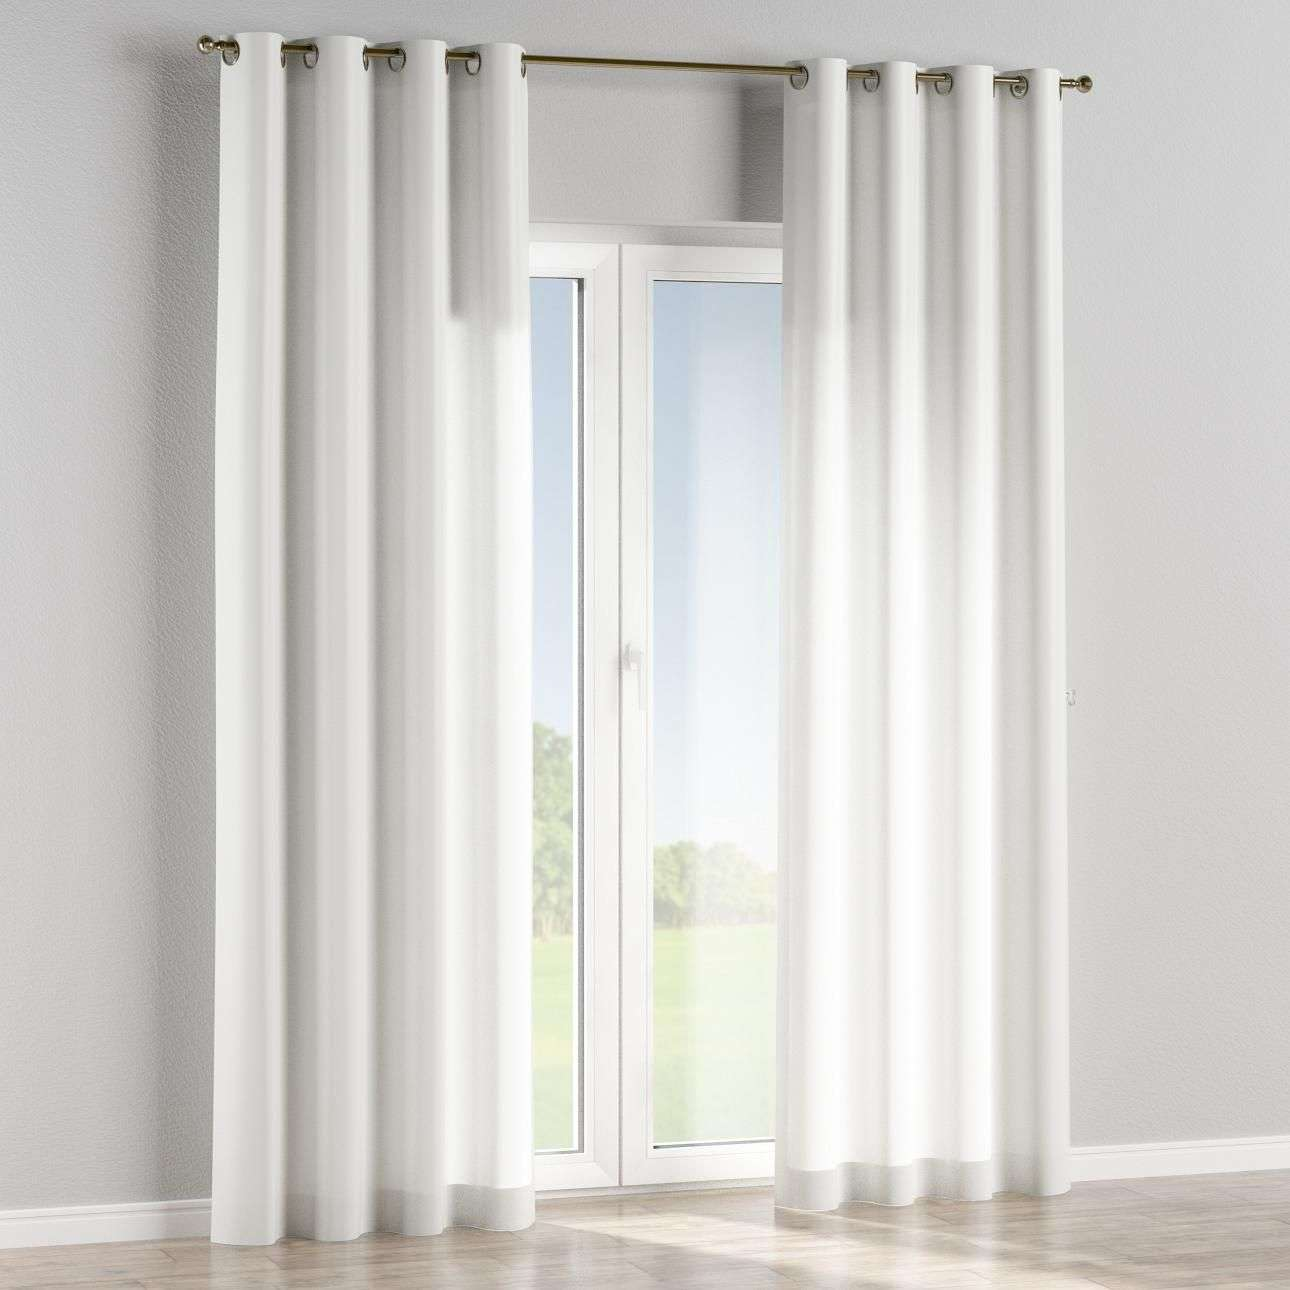 Eyelet curtains in collection Marina, fabric: 140-13